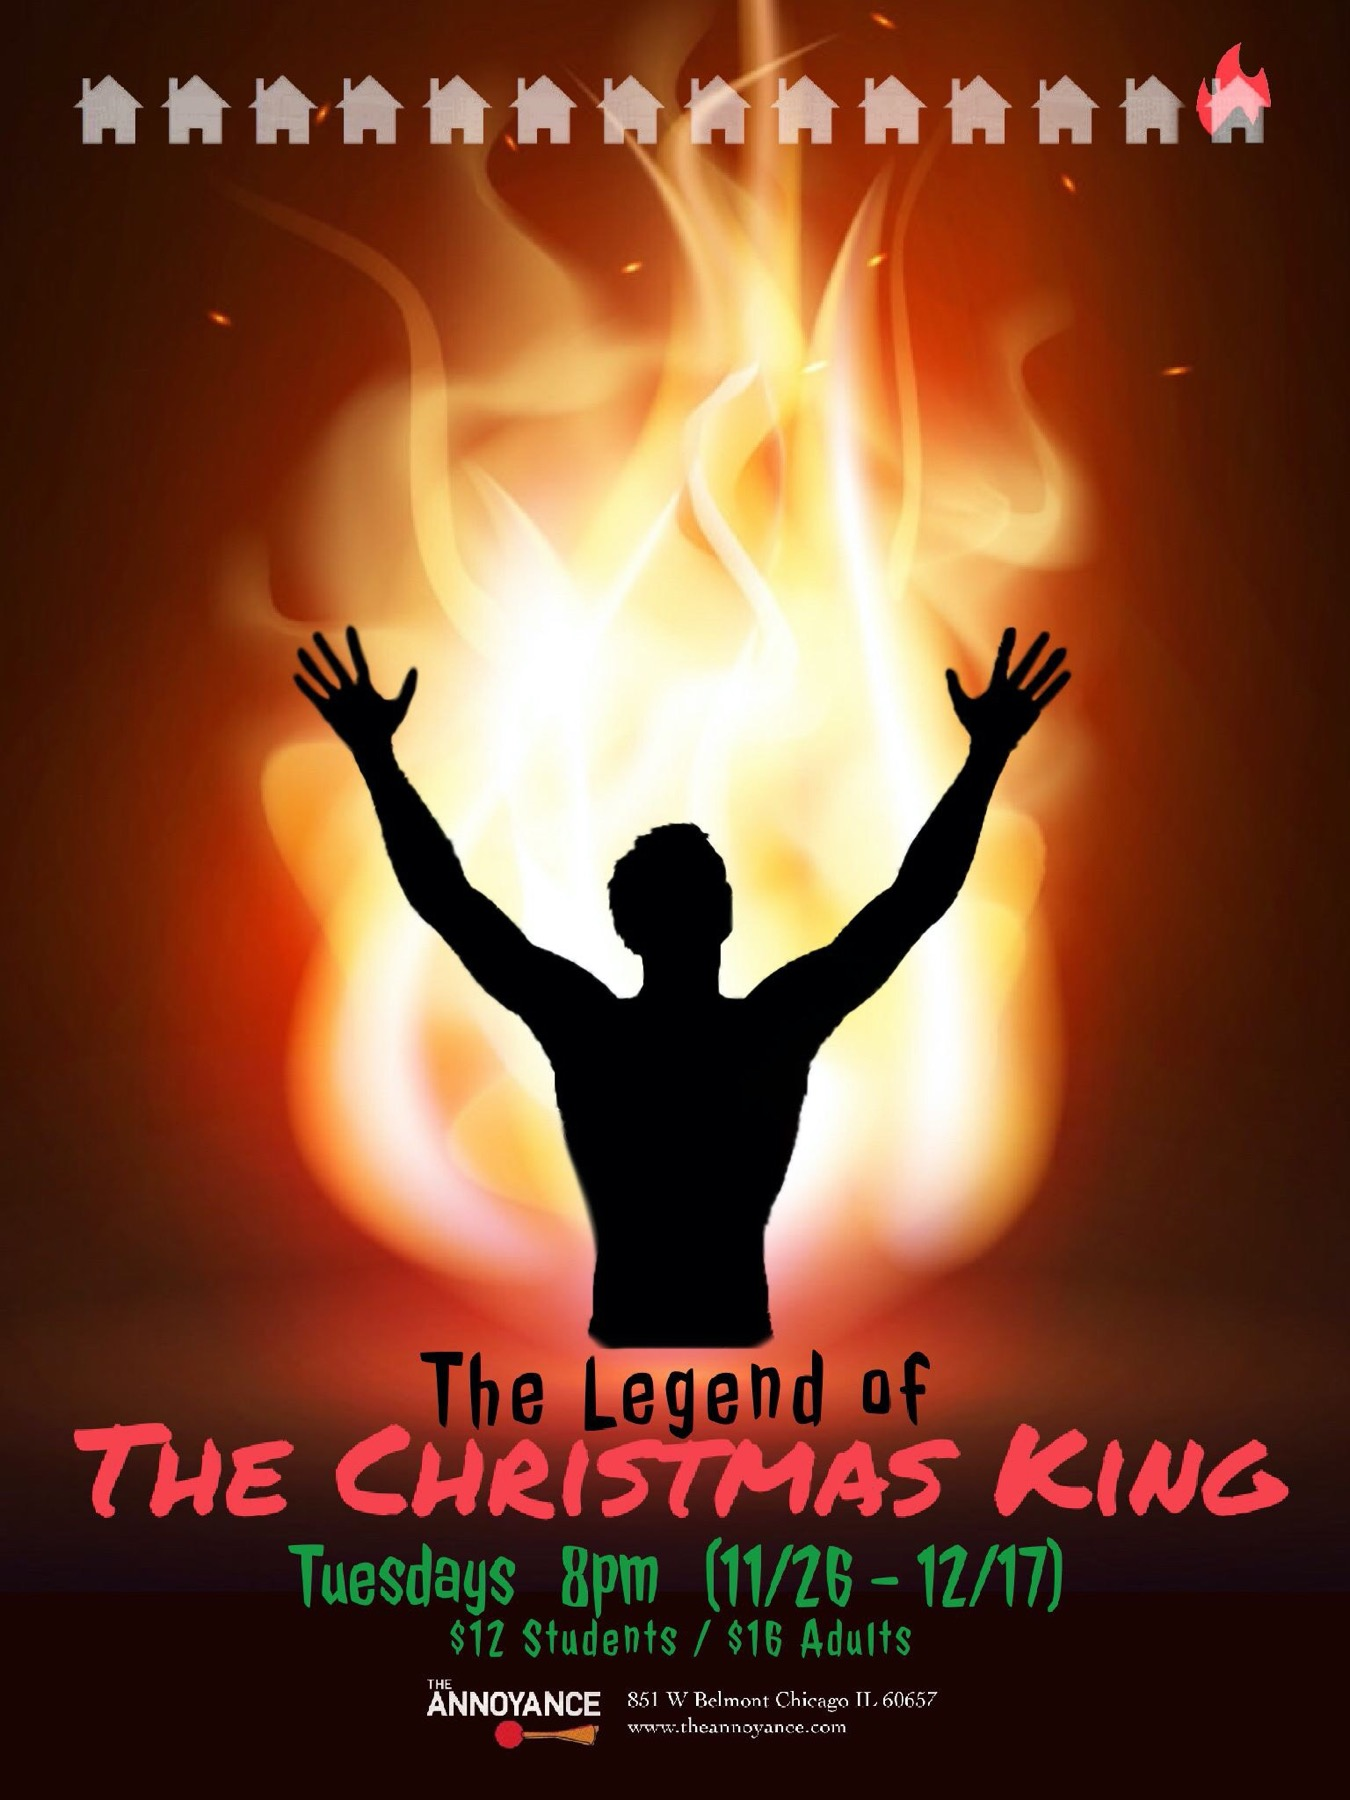 The Legend of the Christmas King